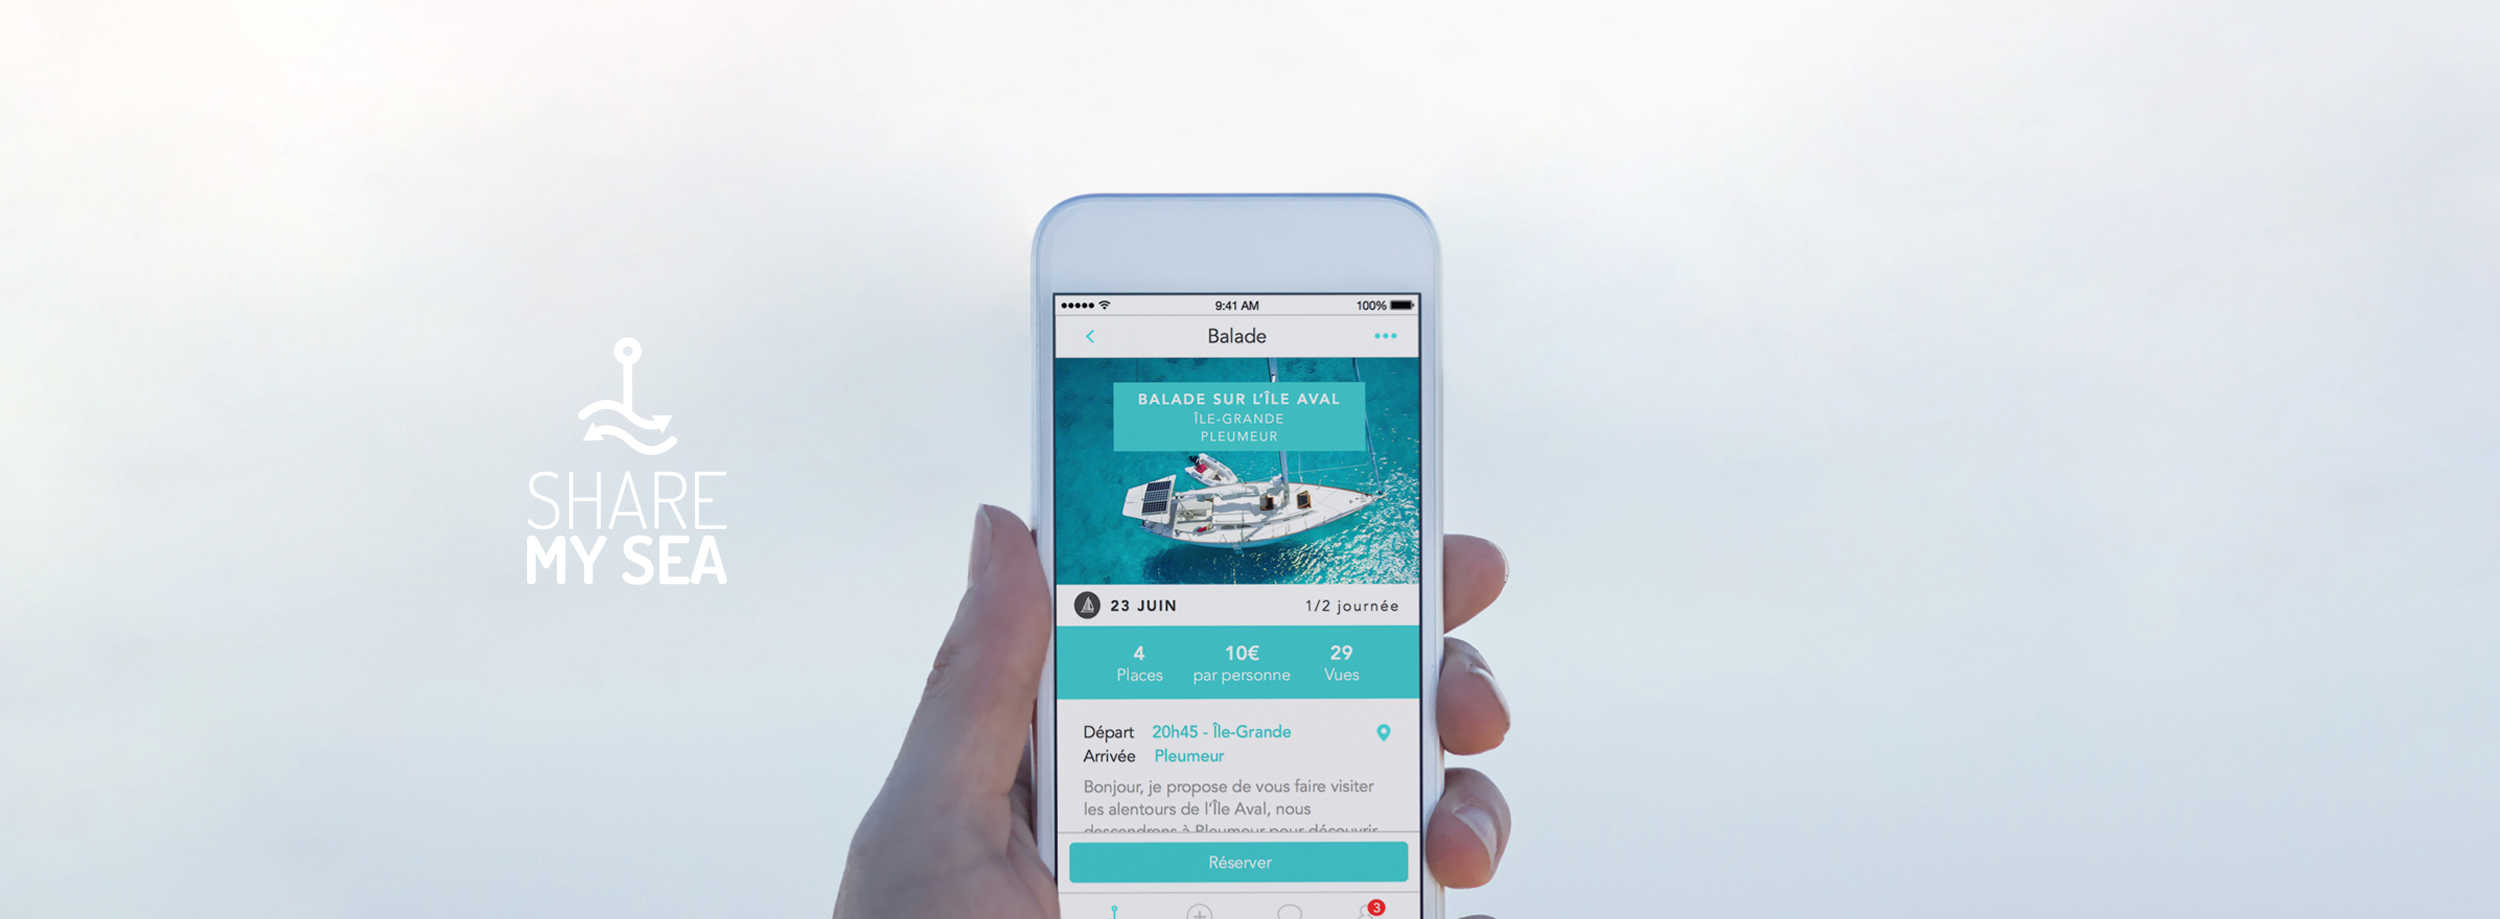 sharemysea-application-mobile-imagescreations